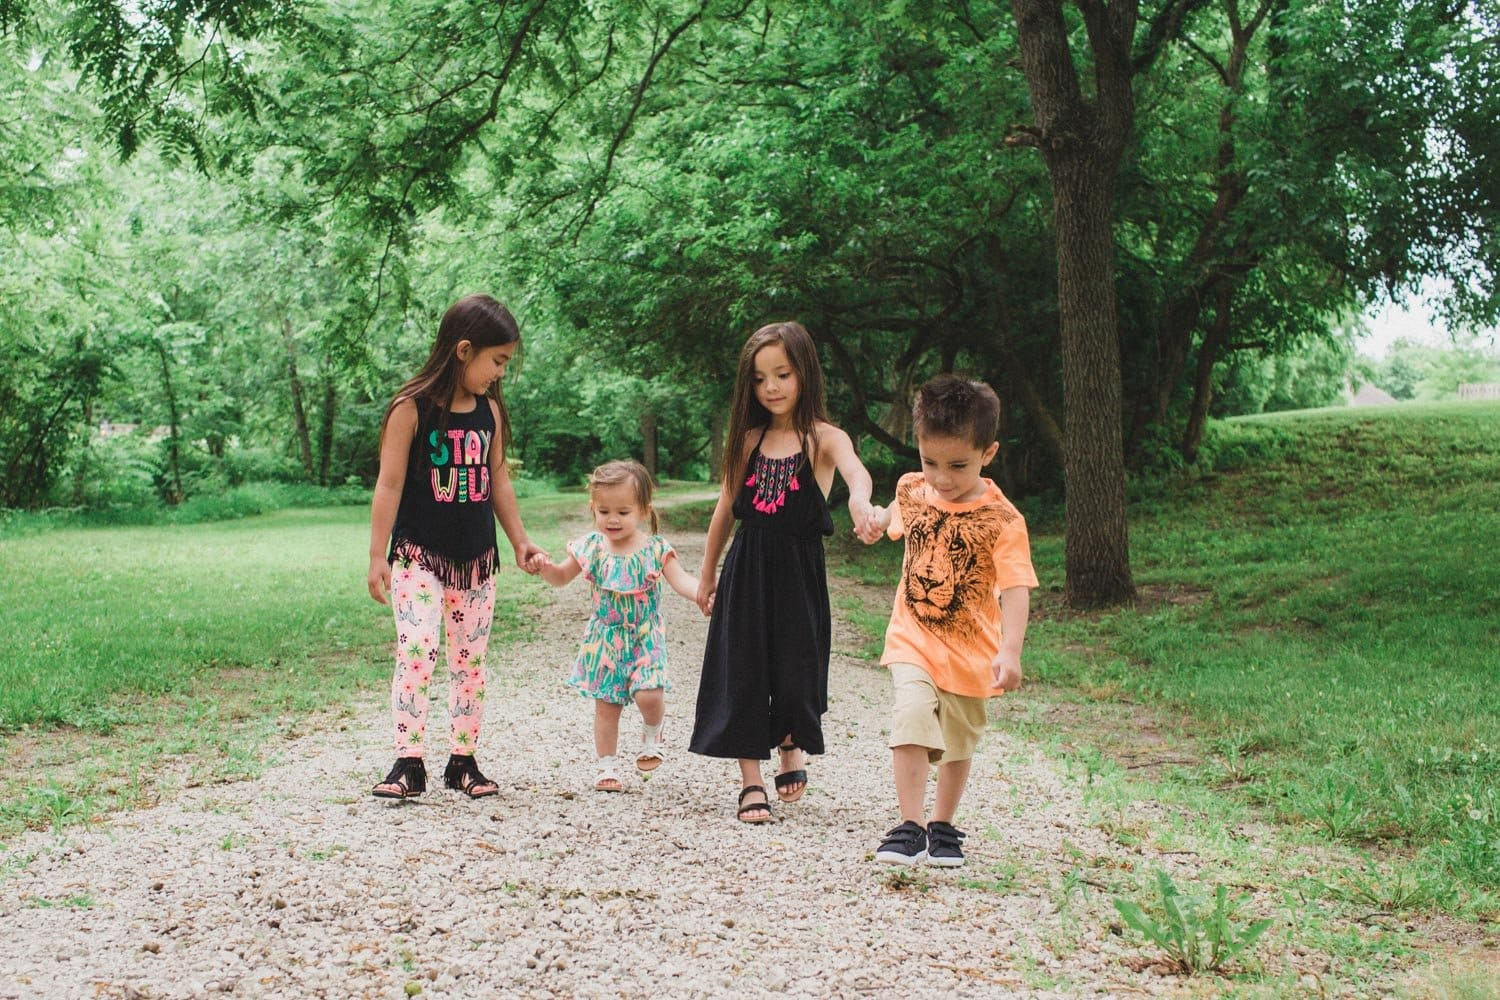 Safari Outfits for Kids - Jungle Zoo and Safari theme outfits for kids that are for every day where, not just parties! These are inspiration stay wild clothing that parents will adore!